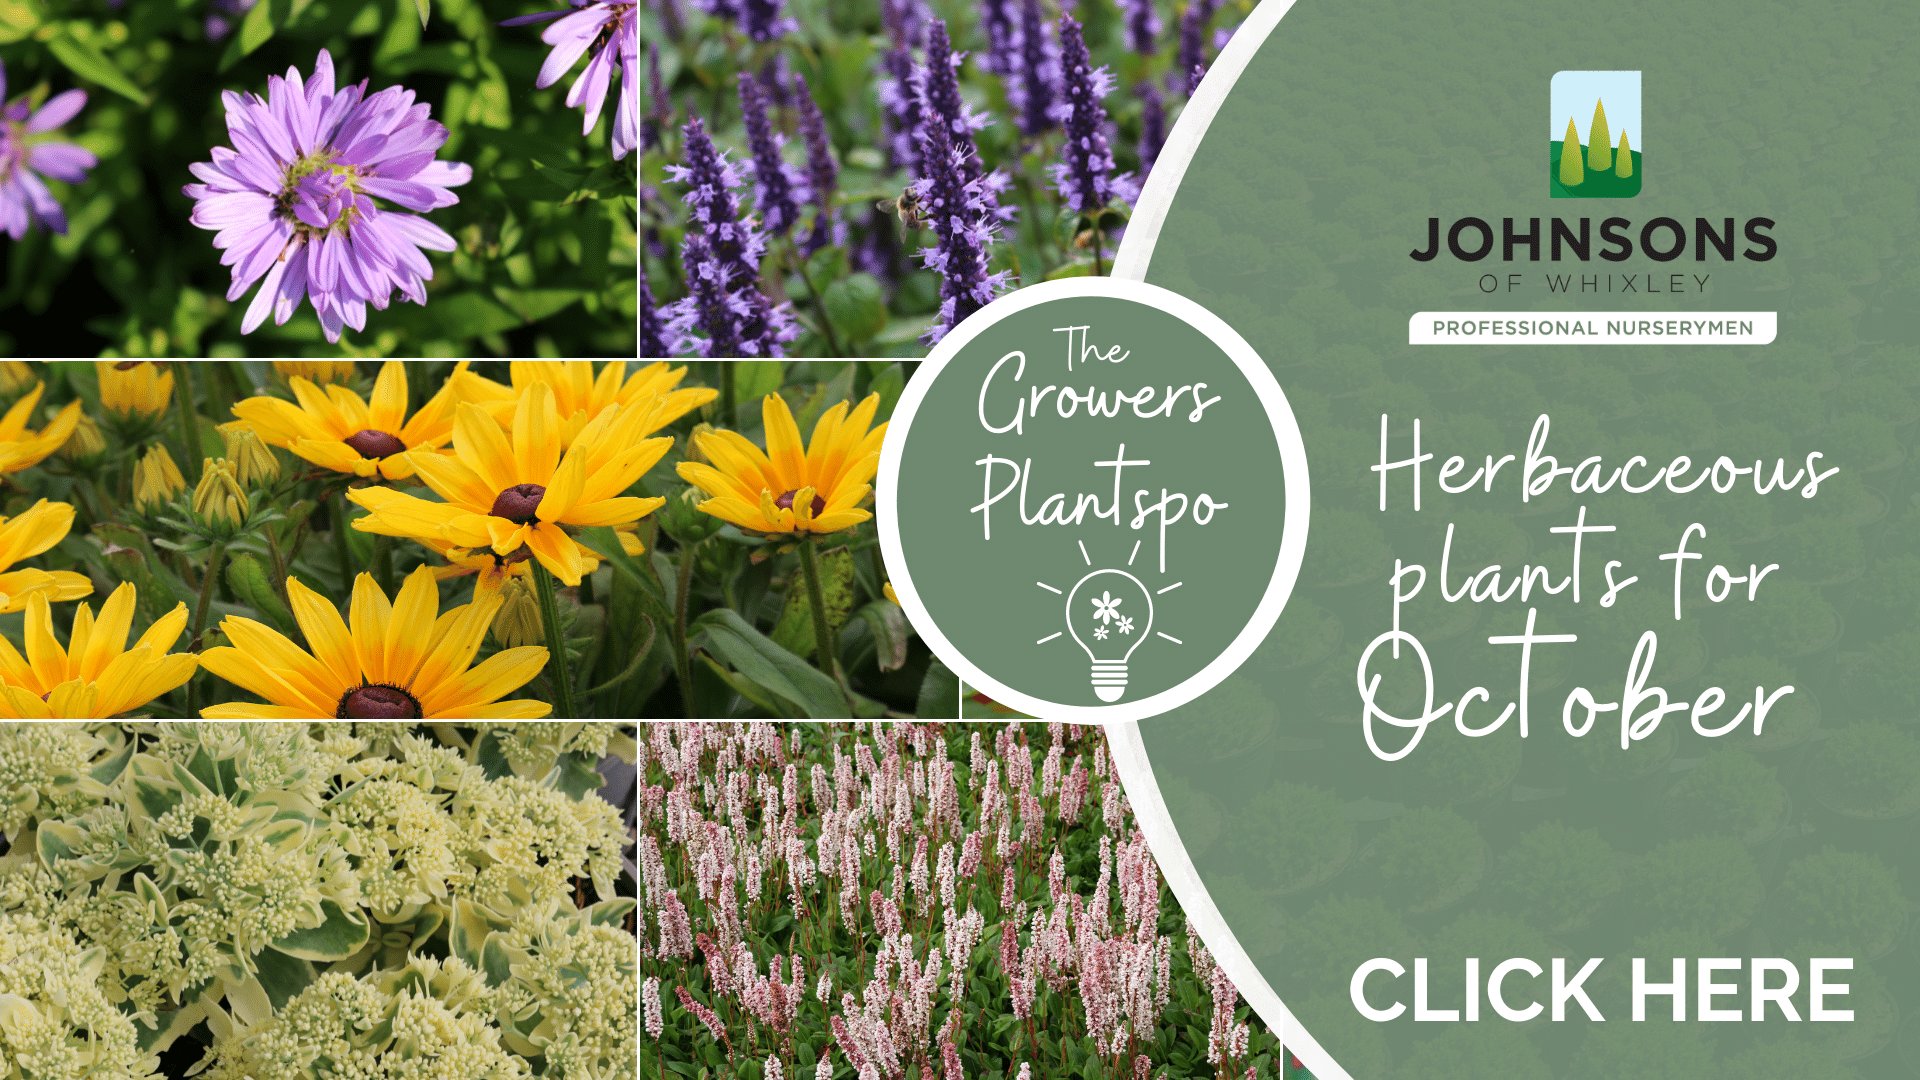 The Growers Plantspo - October Herbaceous